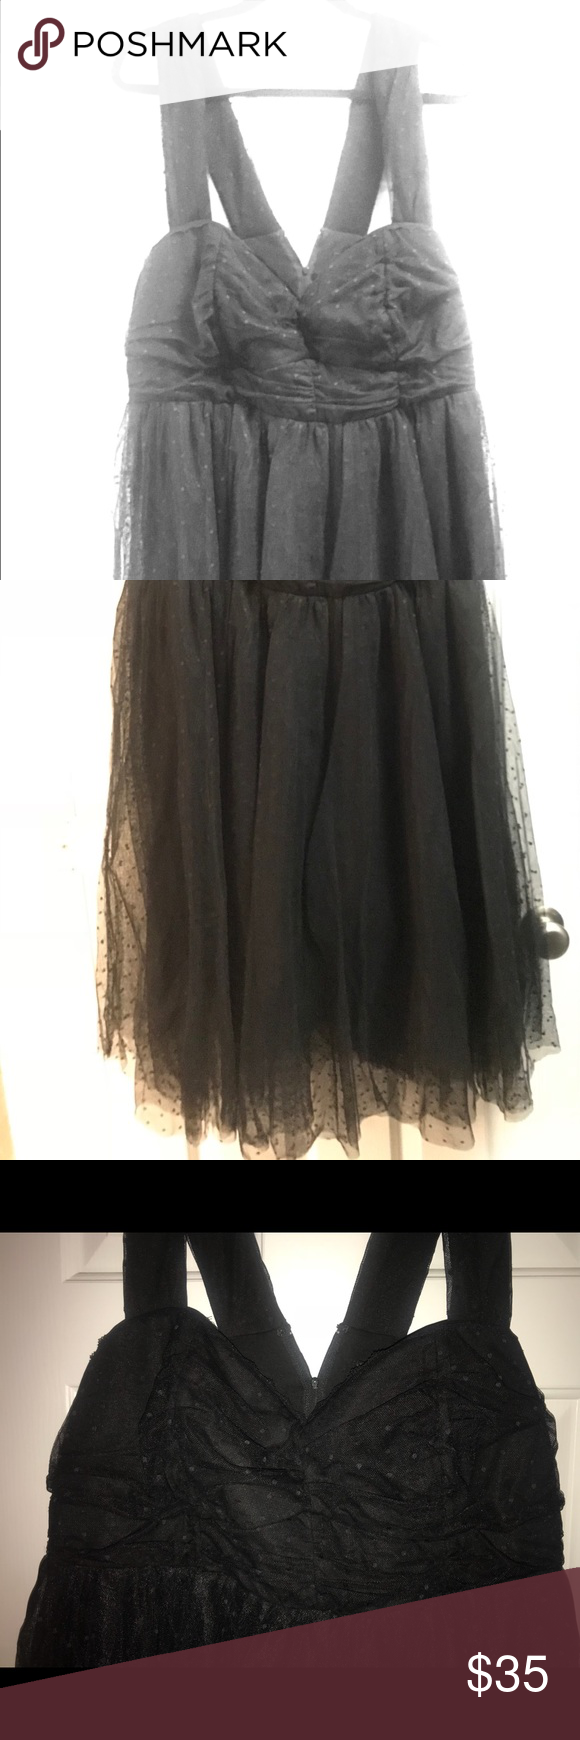 Nwt torrid retro chic size black dress retro chic torrid and